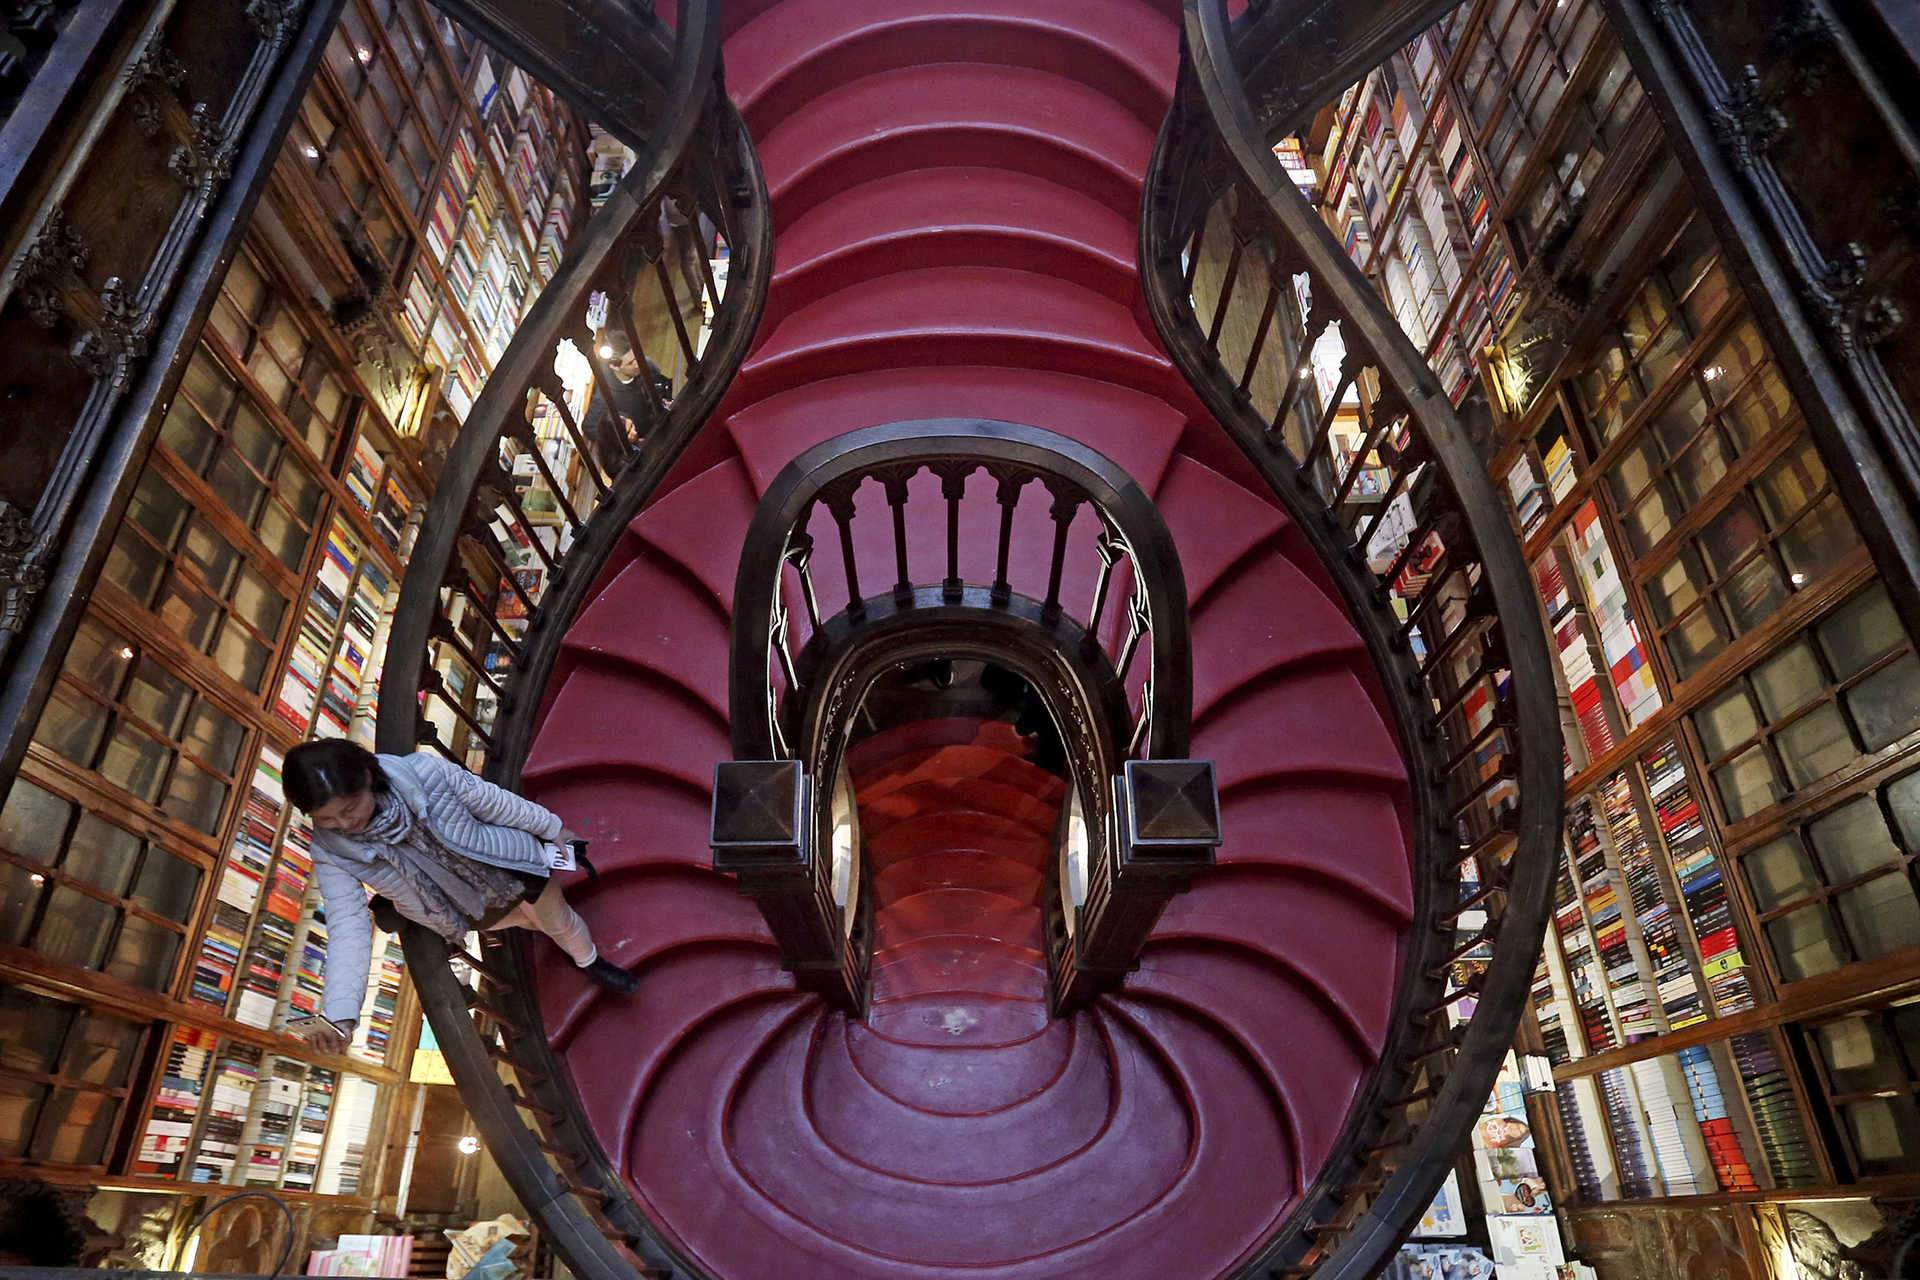 LIVRARIA LELLO  - PORTO  It's one of the oldest bookshops in the world and is housed in an impressive space. It's a great opportunity to visit and do some shopping for Christmas. A book is always a good idea!